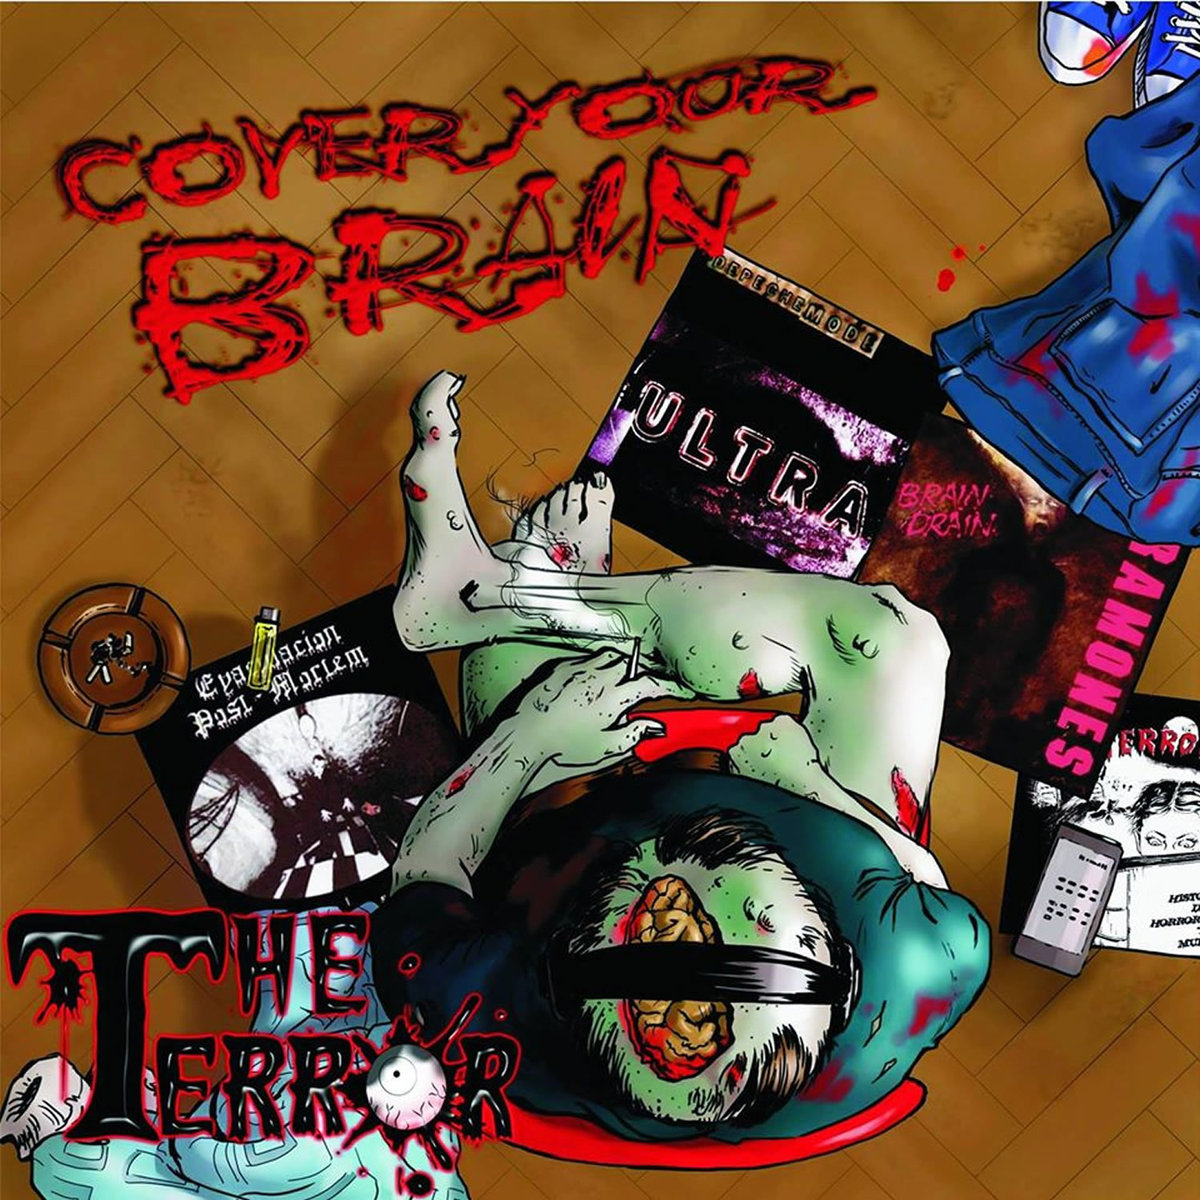 Cover Your Brain (EP)